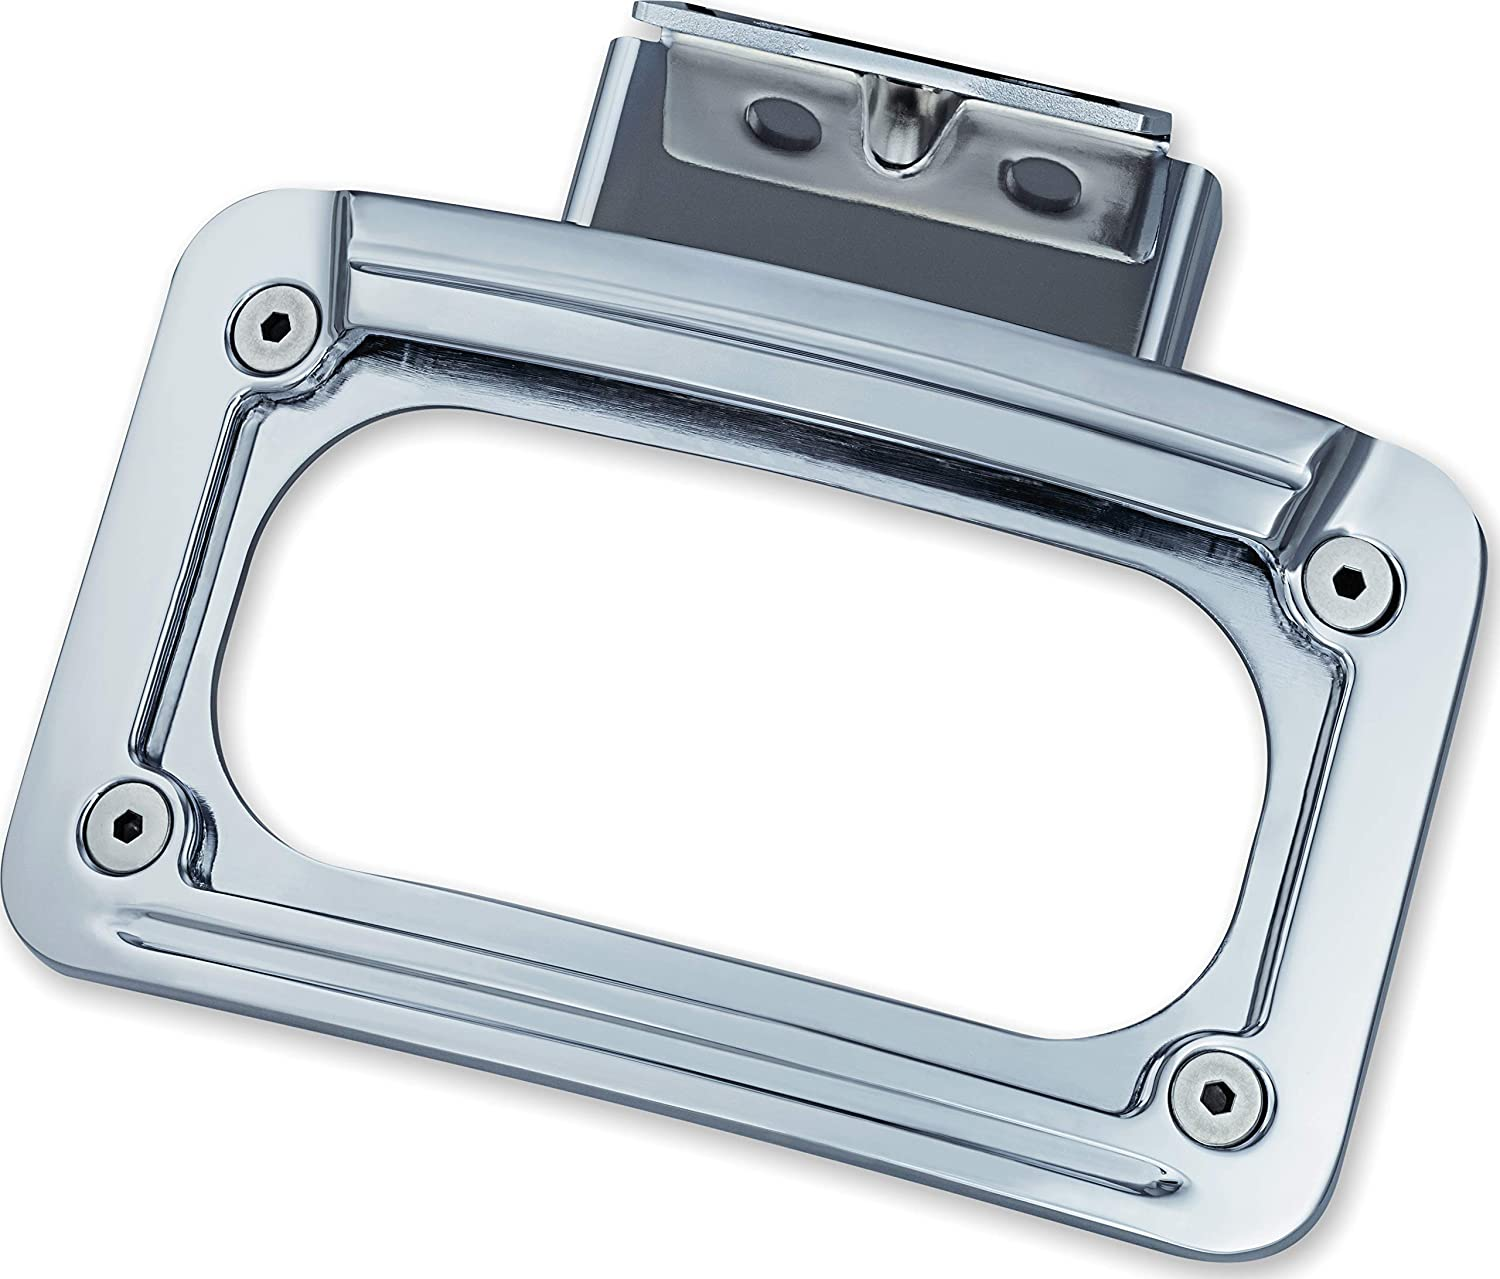 Kuryakyn 5699 Motorcycle Accent Accessory Chrome Curved License Plate Mount Holder and Frame with LED Illumination Lighting for 2014-19 Indian Motorcycles